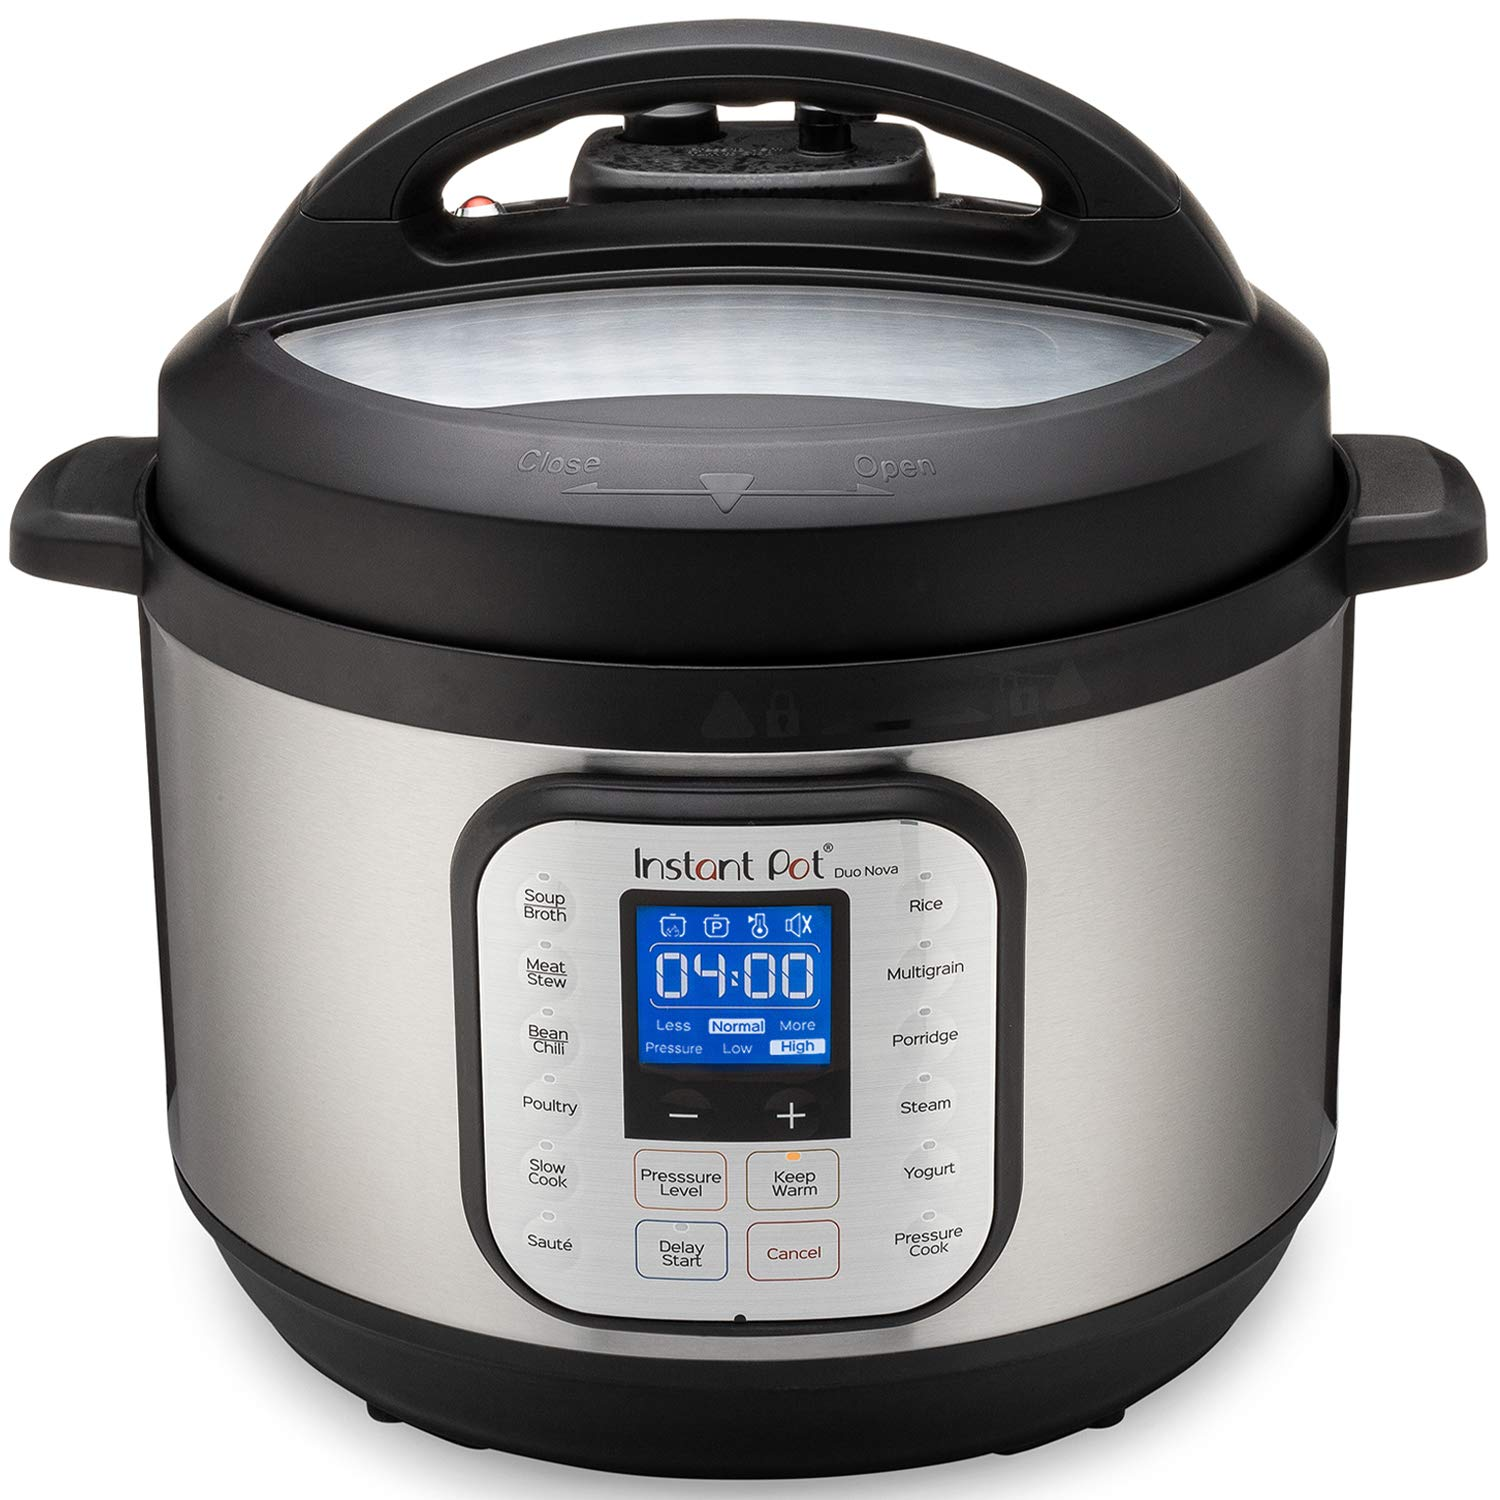 Deals on Instant Pot Duo Nova Pressure Cooker 7 in 1 10 Qt